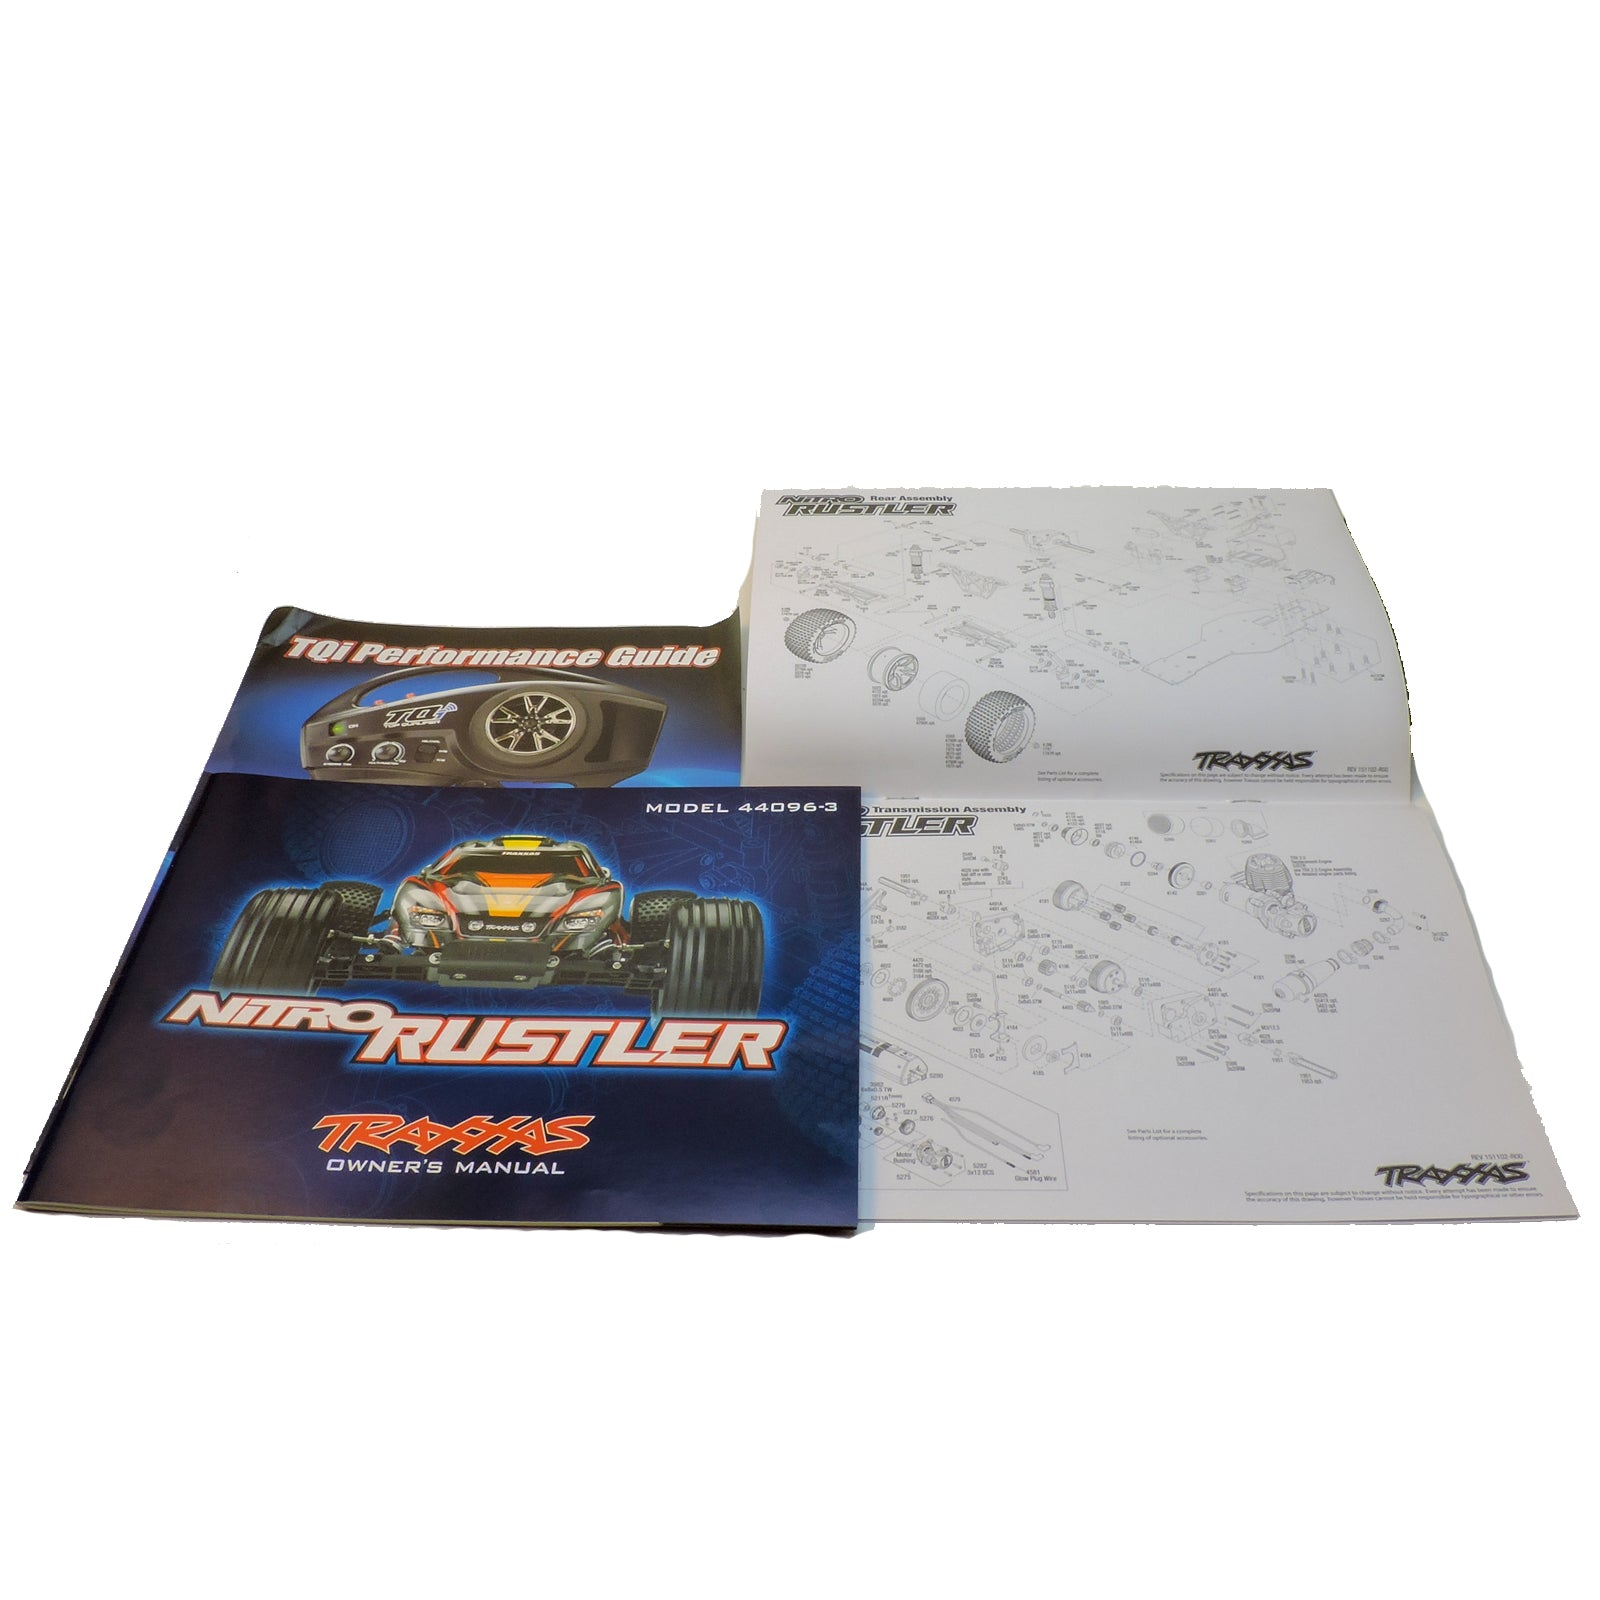 New Traxxas Nitro Rustler 44096 3 Owners Manual Parts List Diagram For Because Some May Be Removed From Assembled Models Minor Markings Or Factory Filled Fluids Present